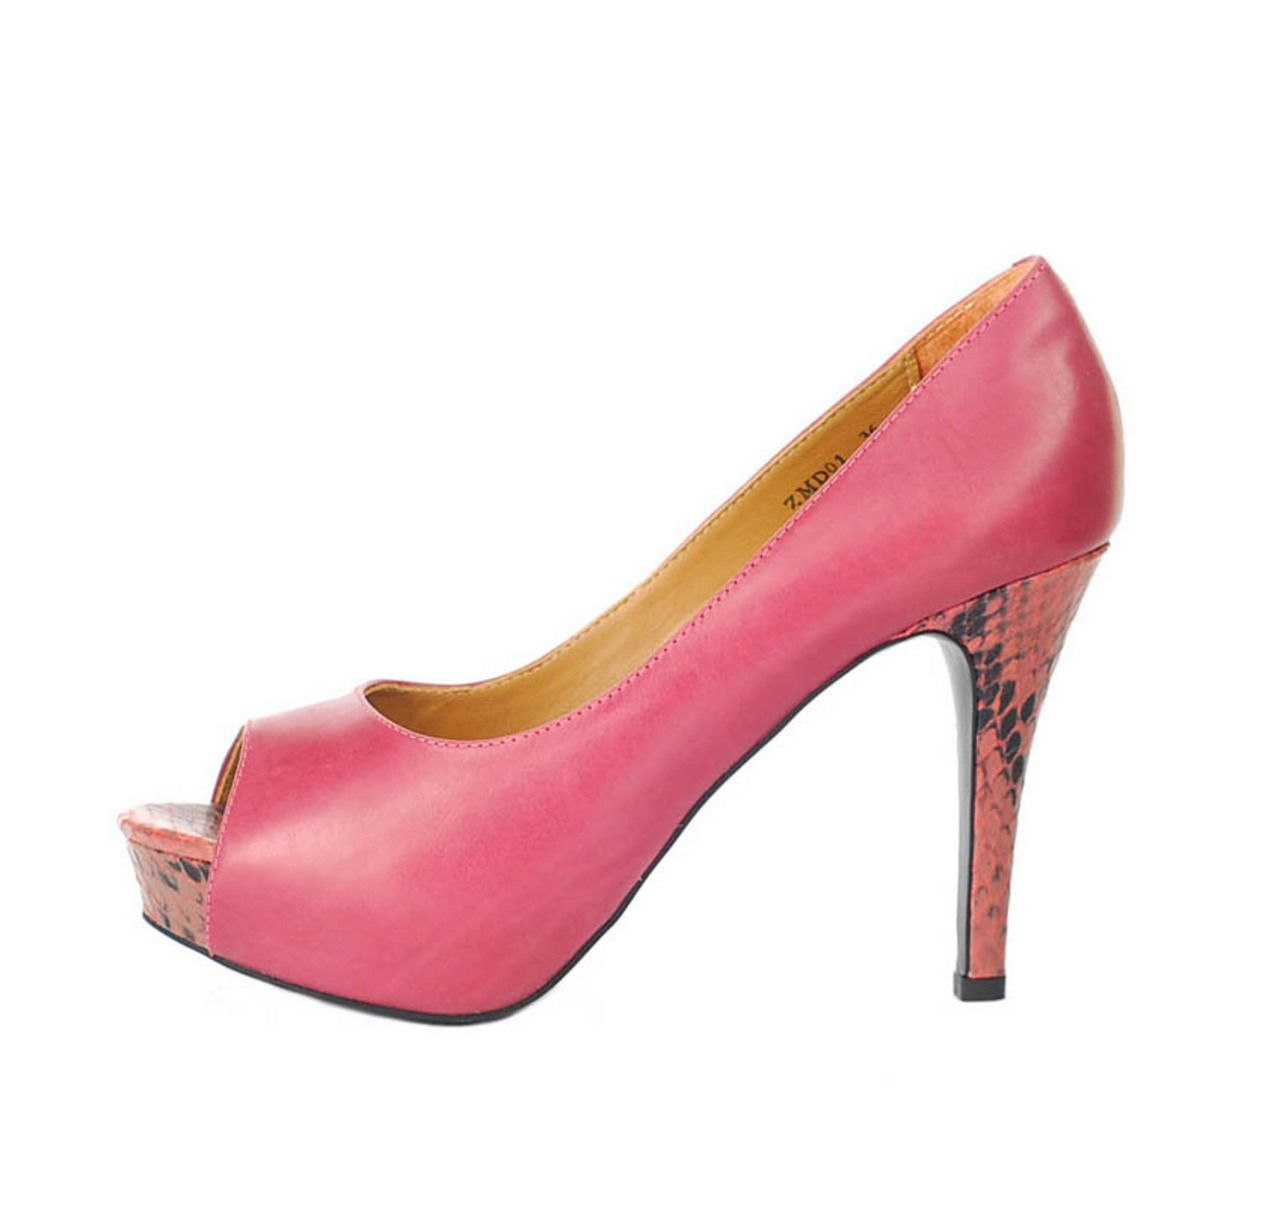 c8d17b543 STACCATO ZMD01   CMG Philippines   Shoes & Bags   Shoes, Shoe brands ...